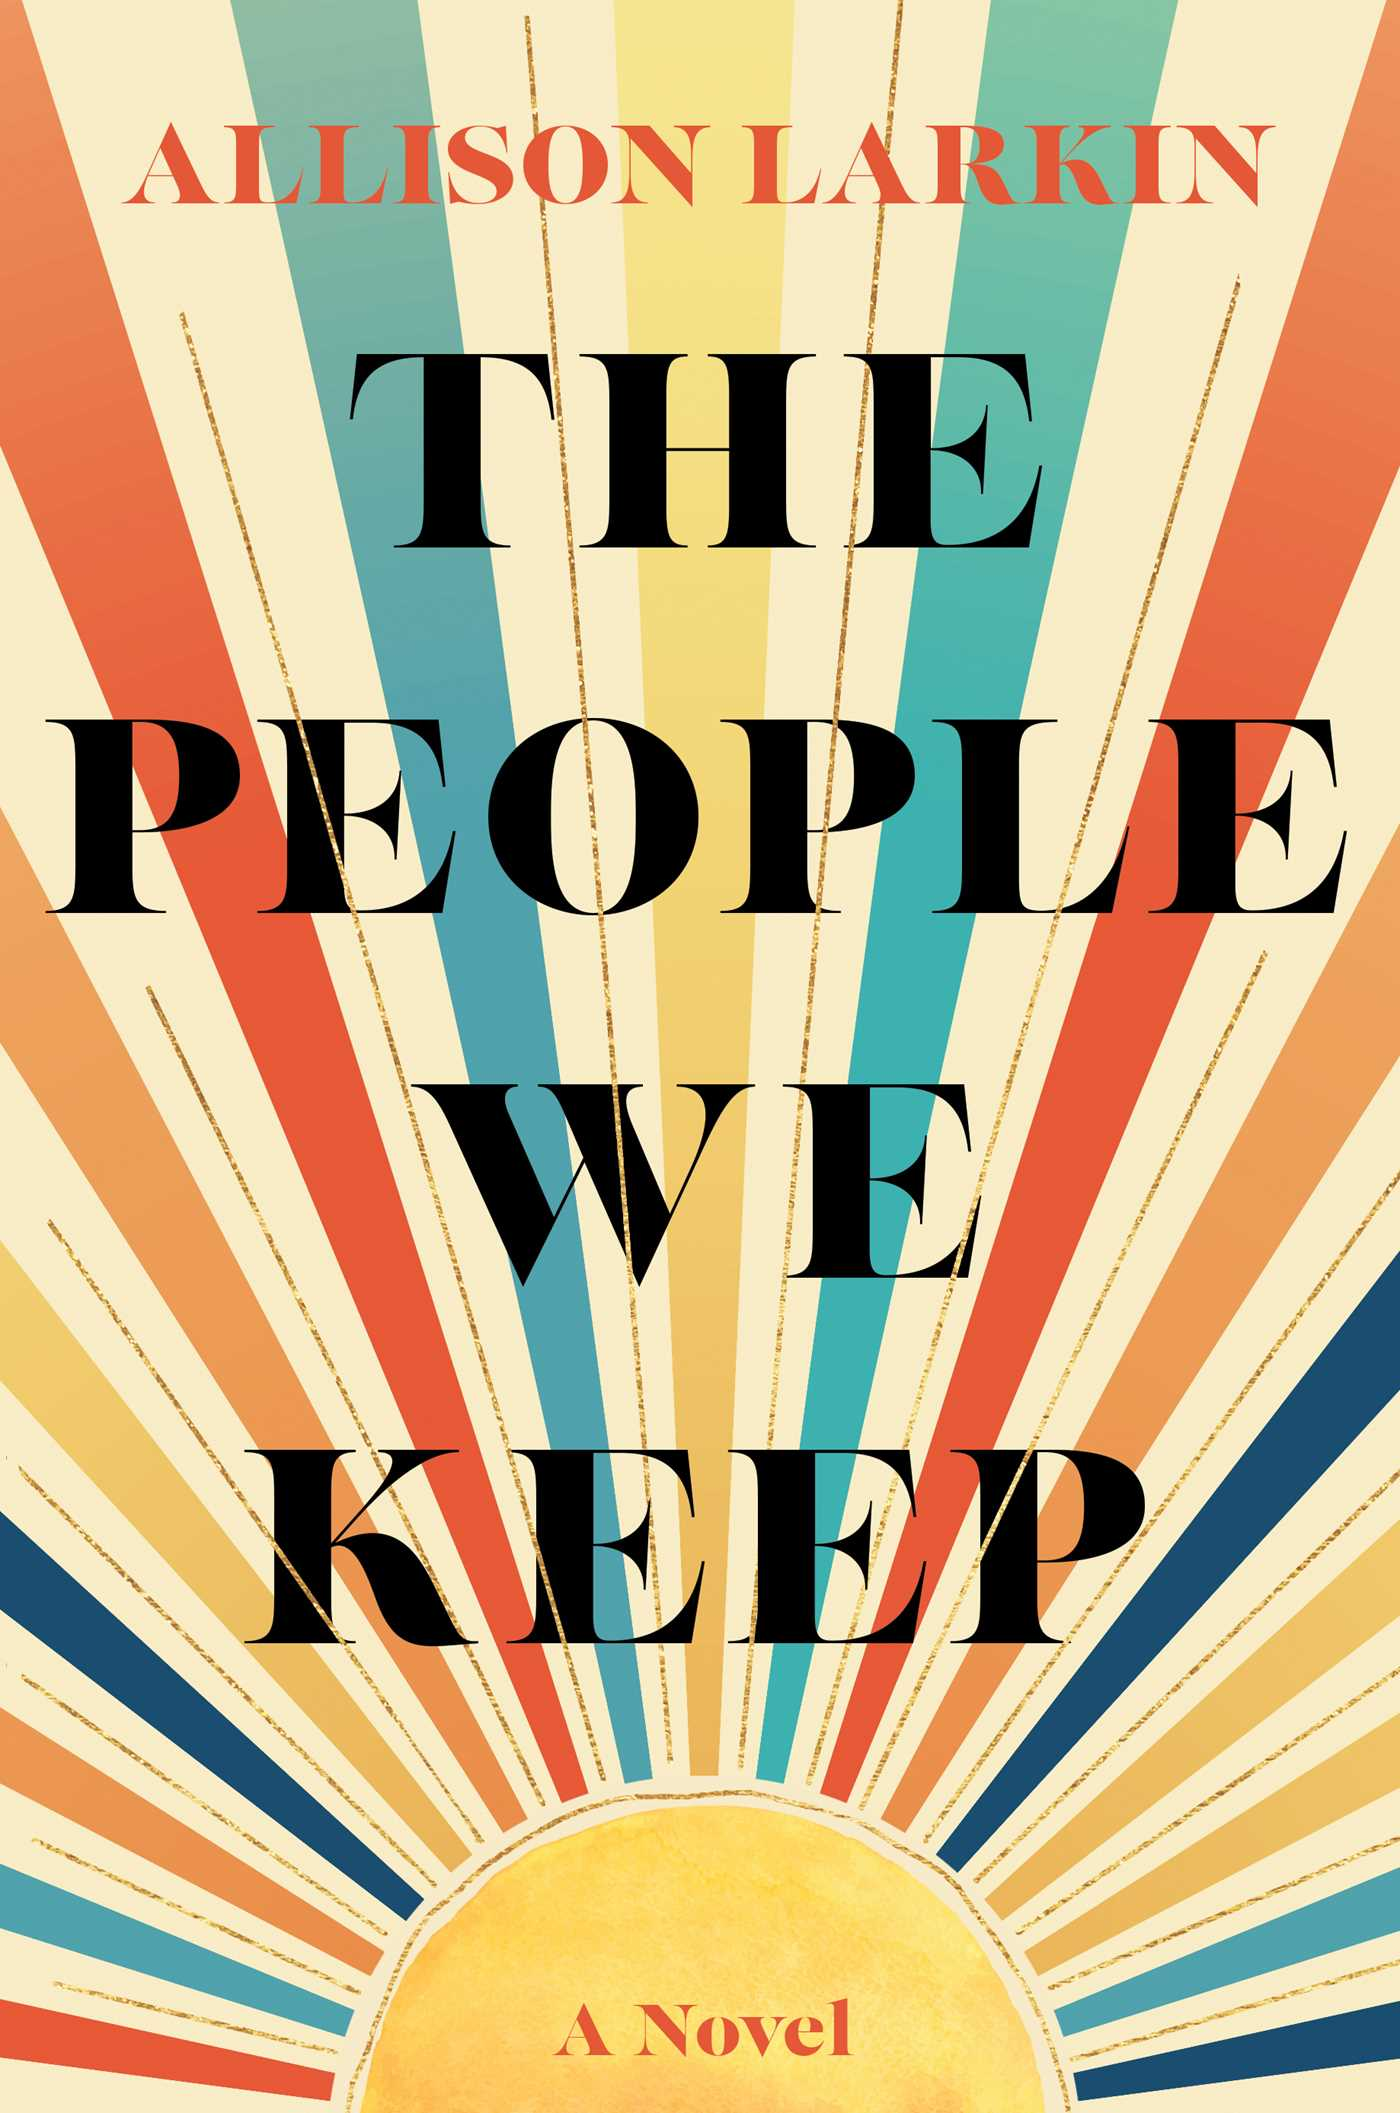 When Does The People We Keep Come Out? Allison Larkin 2021 New Releases